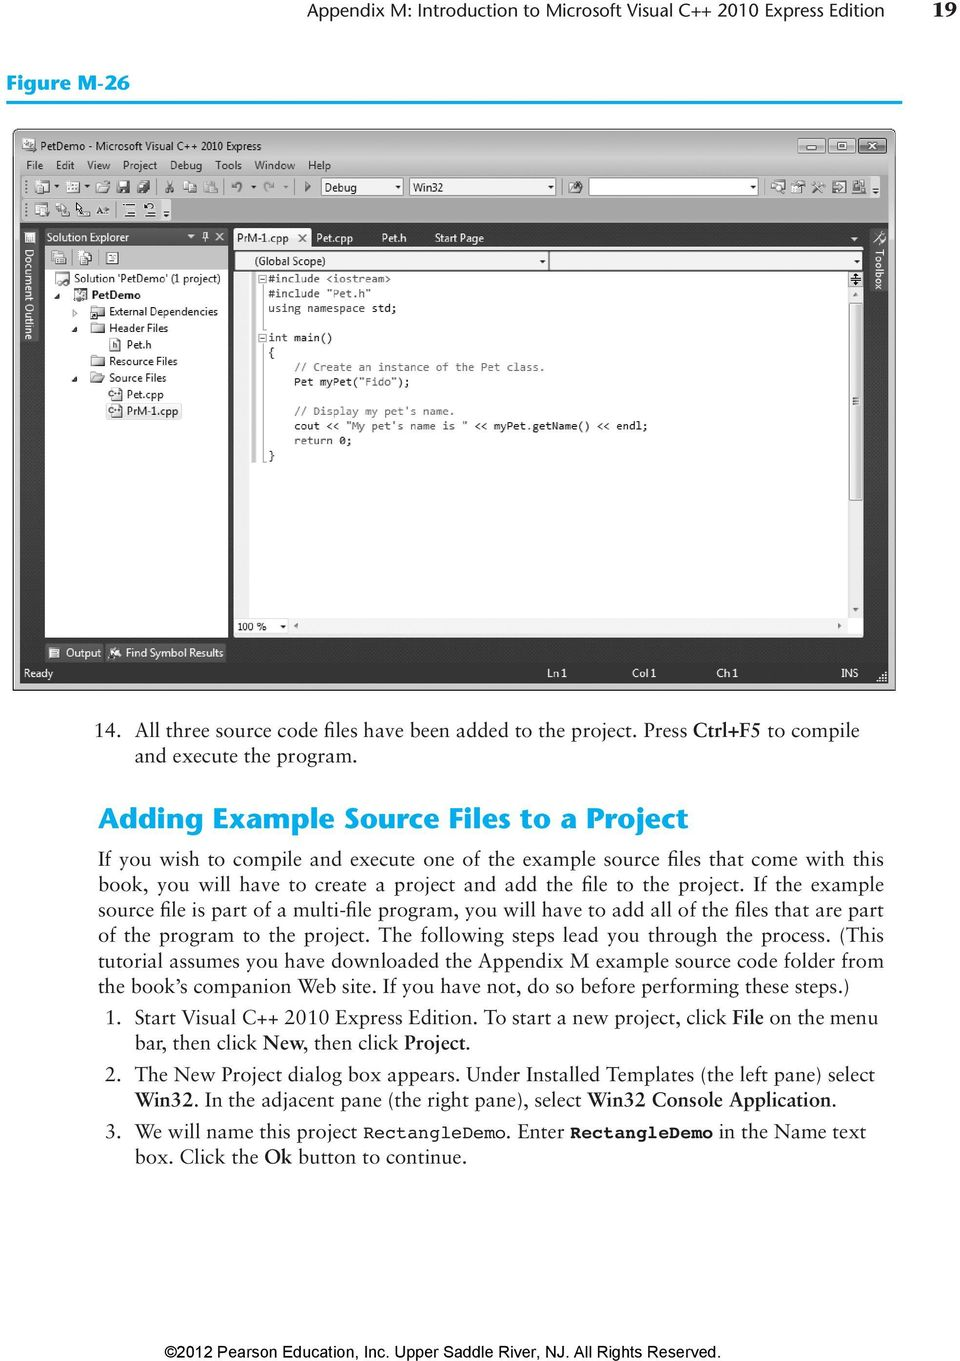 If the example source file is part of a multi-file program, you will have to add all of the files that are part of the program to the project. The following steps lead you through the process.